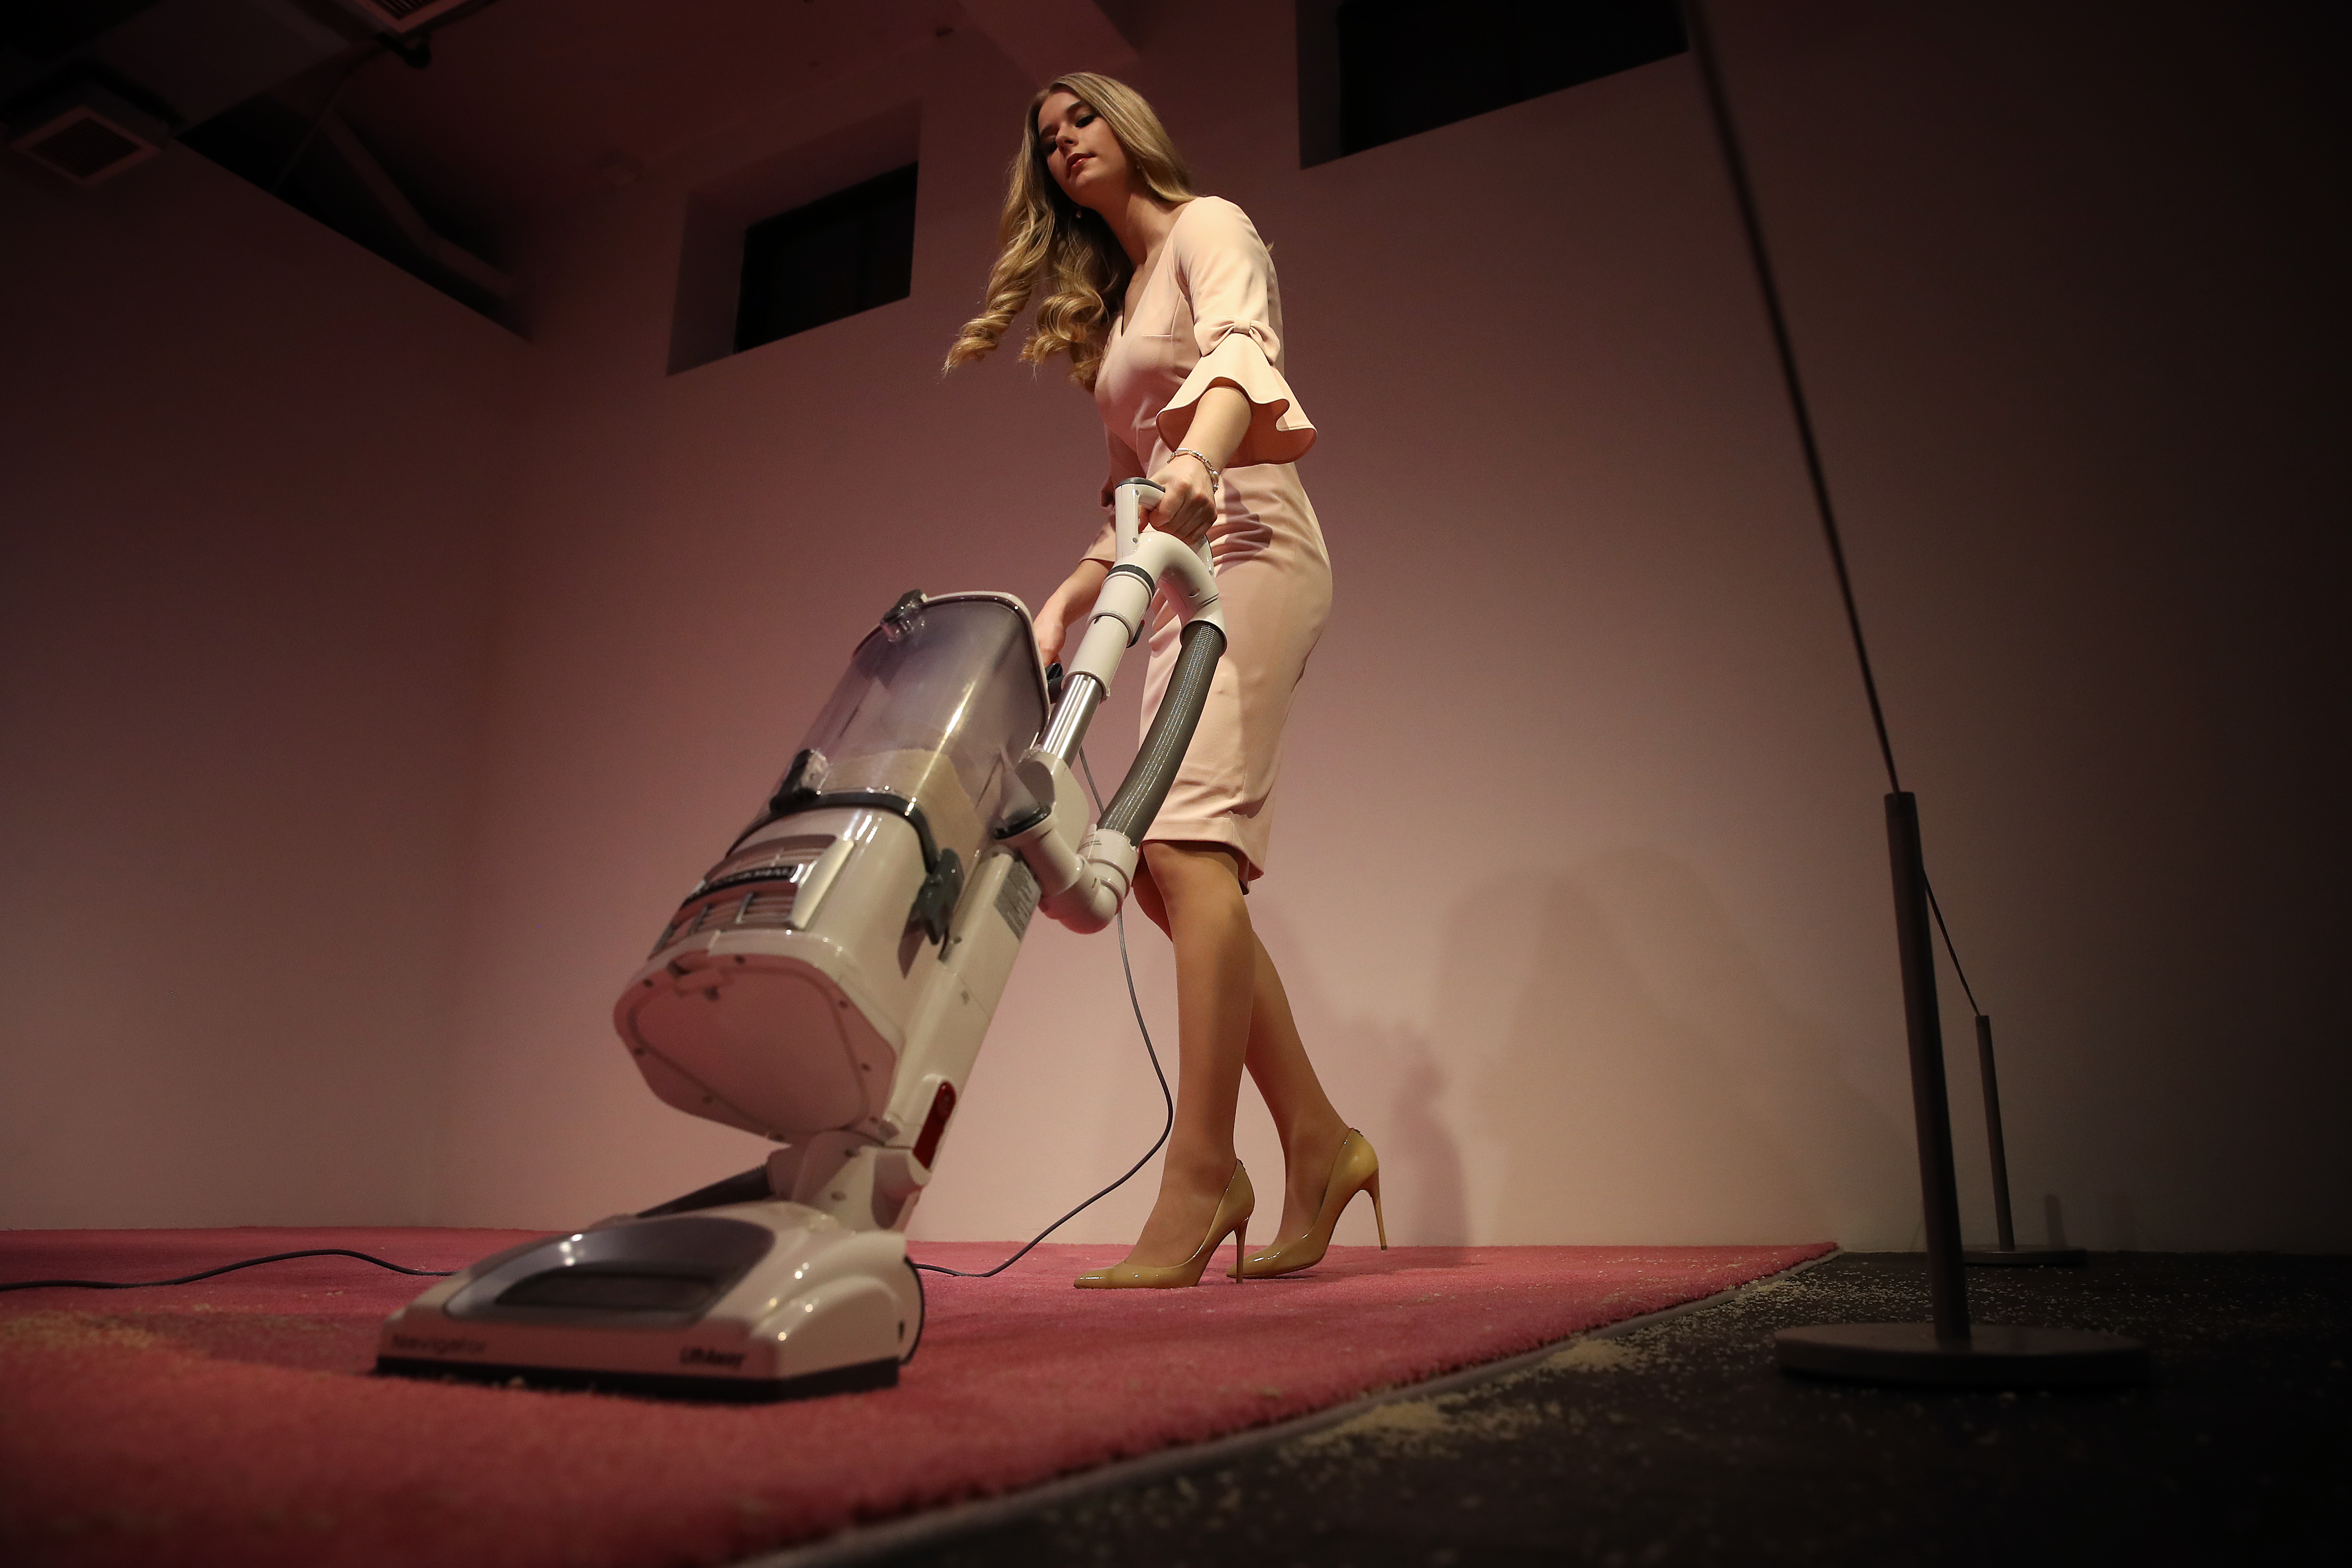 "An Ivanka Trump look-alike model vacuums bread crumbs thrown by visitors as part of an art installation titled ""Ivanka Vacuuming"" at the Flashpoint Gallery on February 07, 2019 in Washington, DC. (Photo by Win McNamee/Getty Images)"